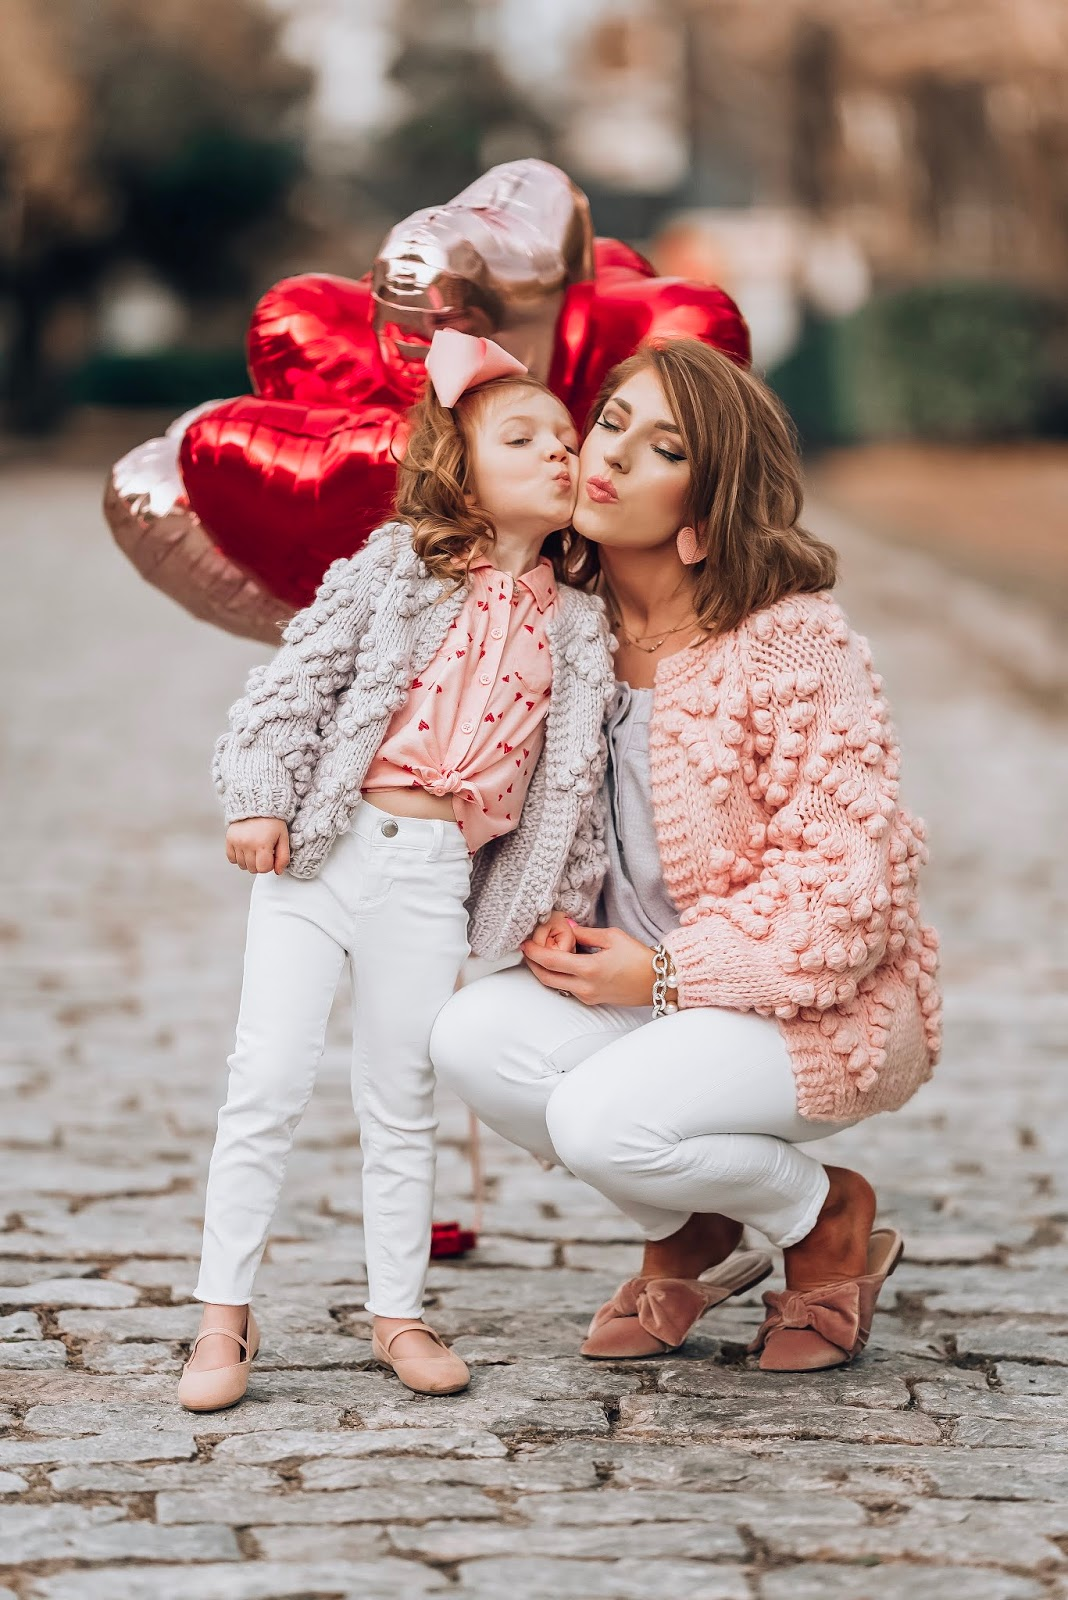 Valentine's Day 2019 + My Thoughts on Valentine's Day - Something Delightful Blog